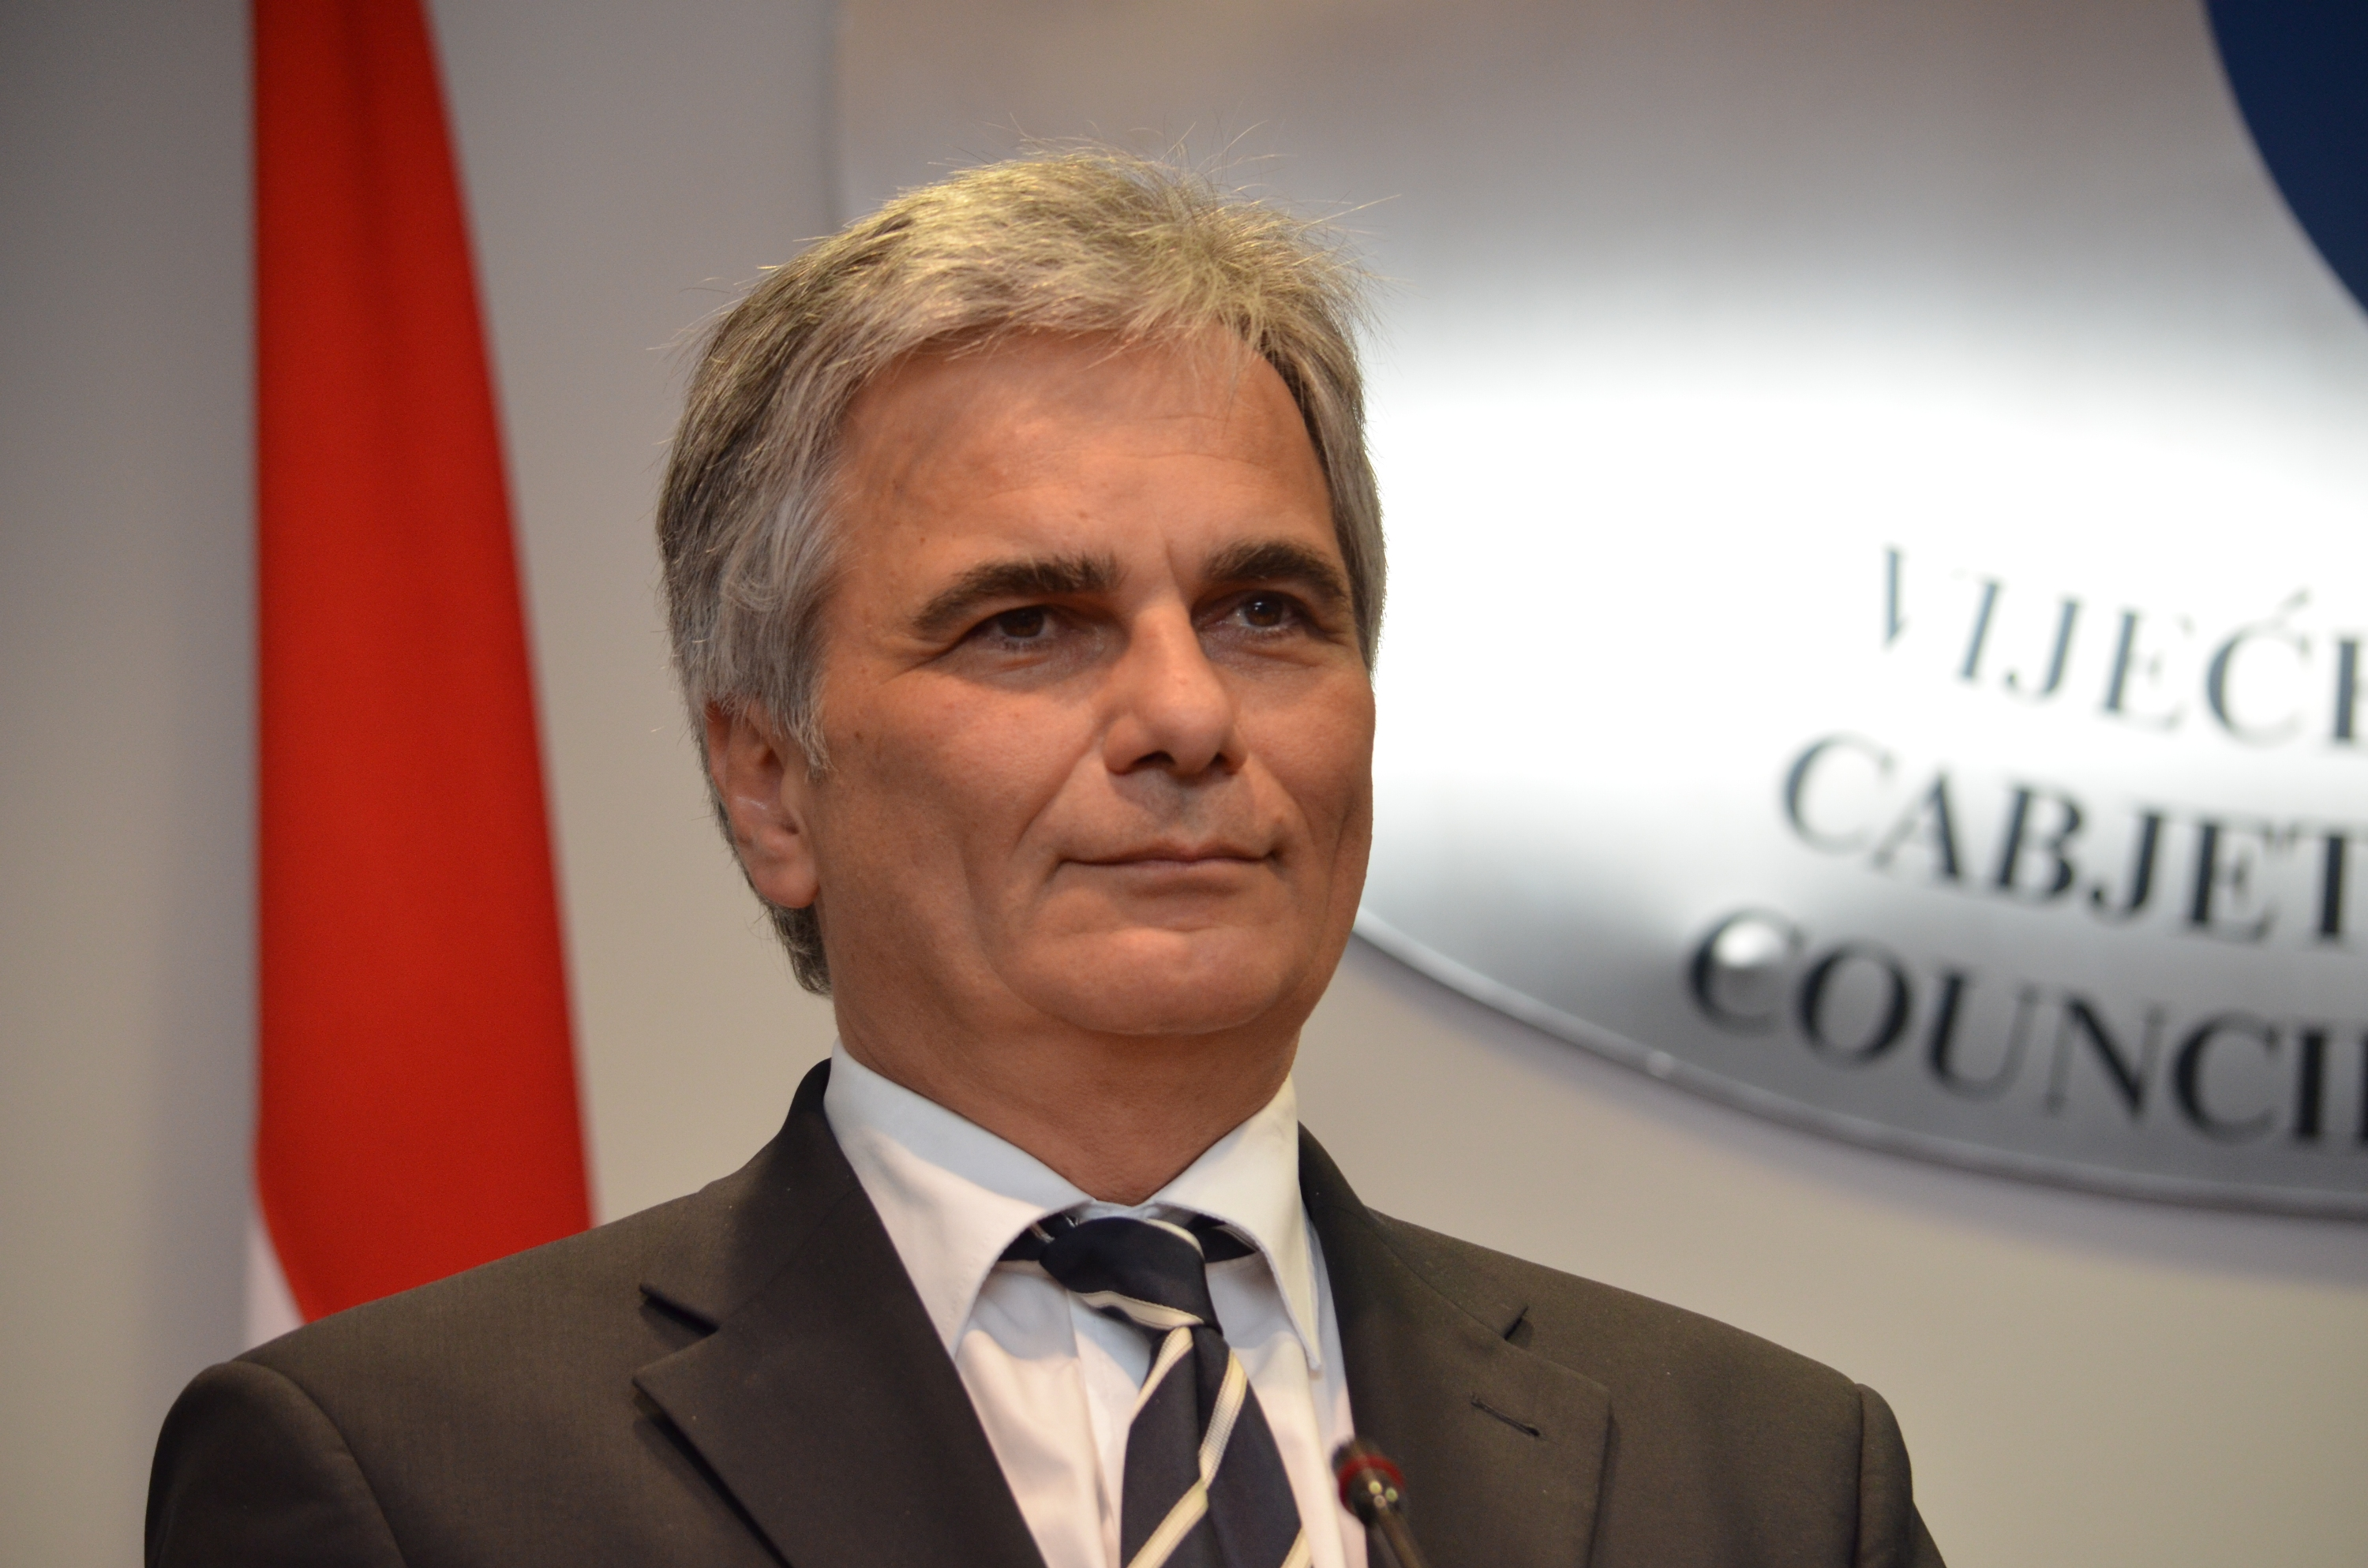 Austrian Chancellor Faymann Visits Sarajevo On The Occasion Of the Centenary and Flood Consequences